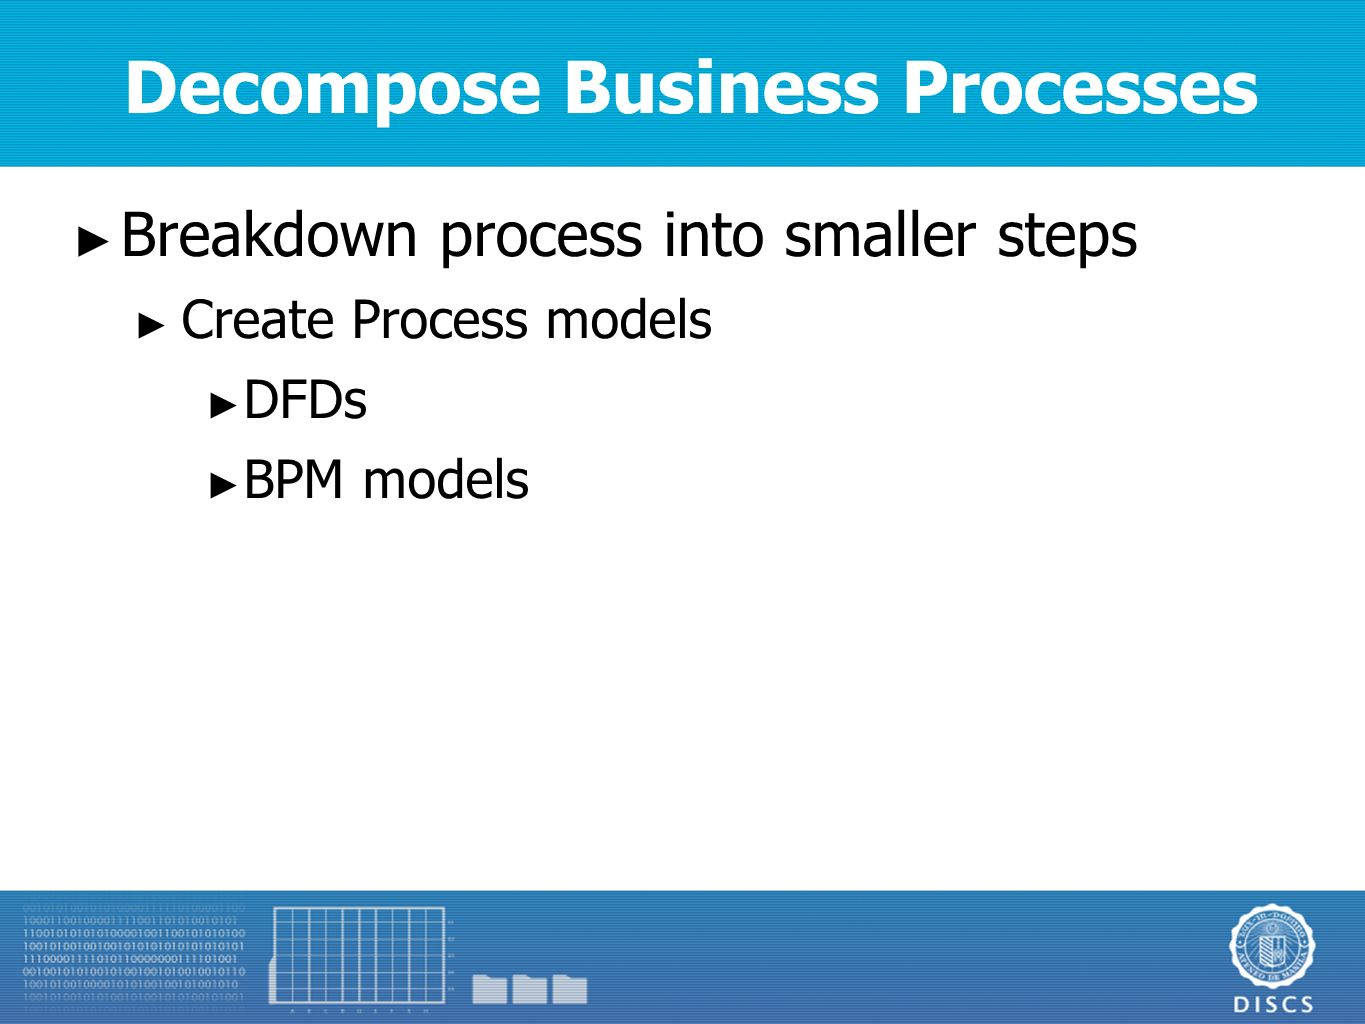 service modeling based on soa concepts technology design by 8 decompose business processes ► breakdown process into smaller steps ► create process models ► dfds ► bpm models